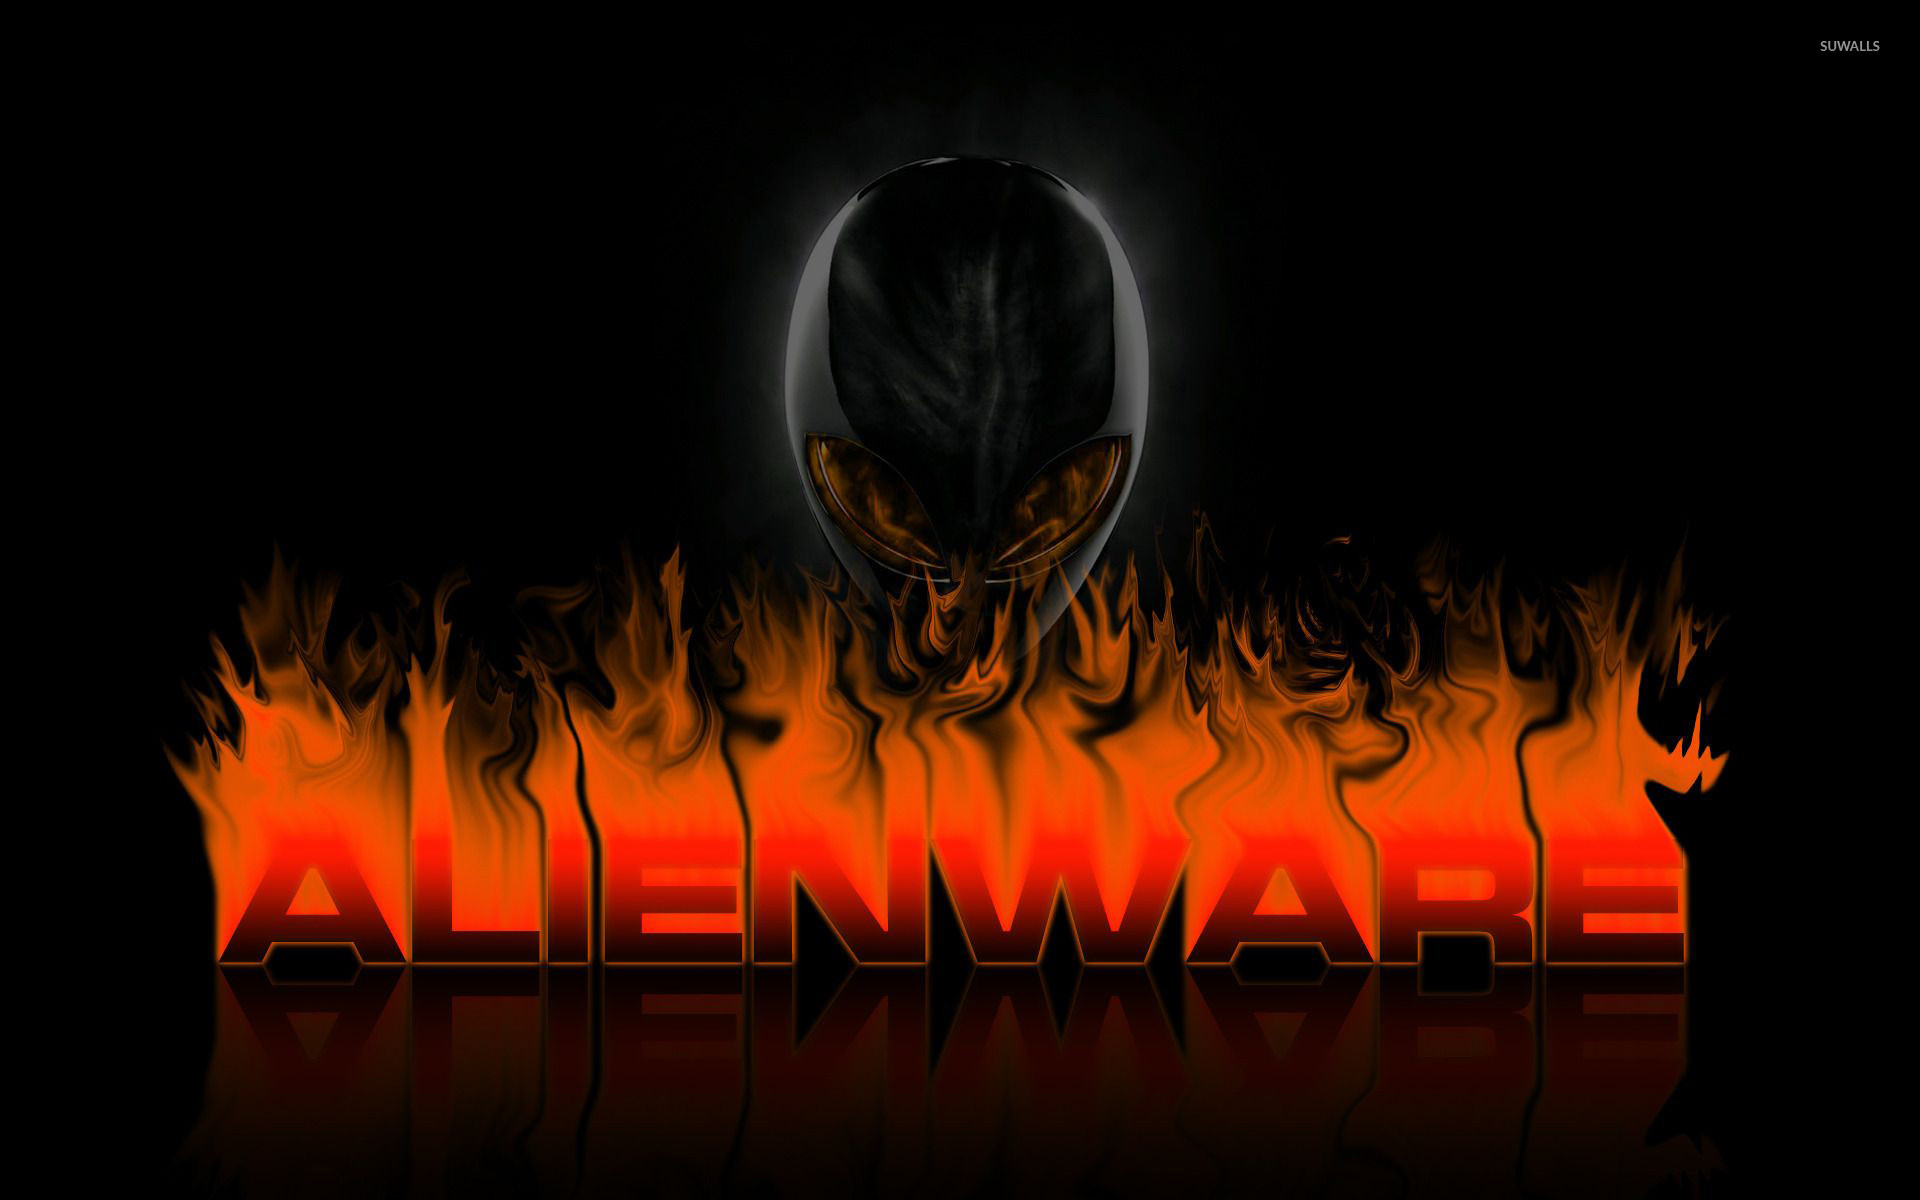 Alienware Live Wallpapers, 41 Alienware Live Wallpapers and .